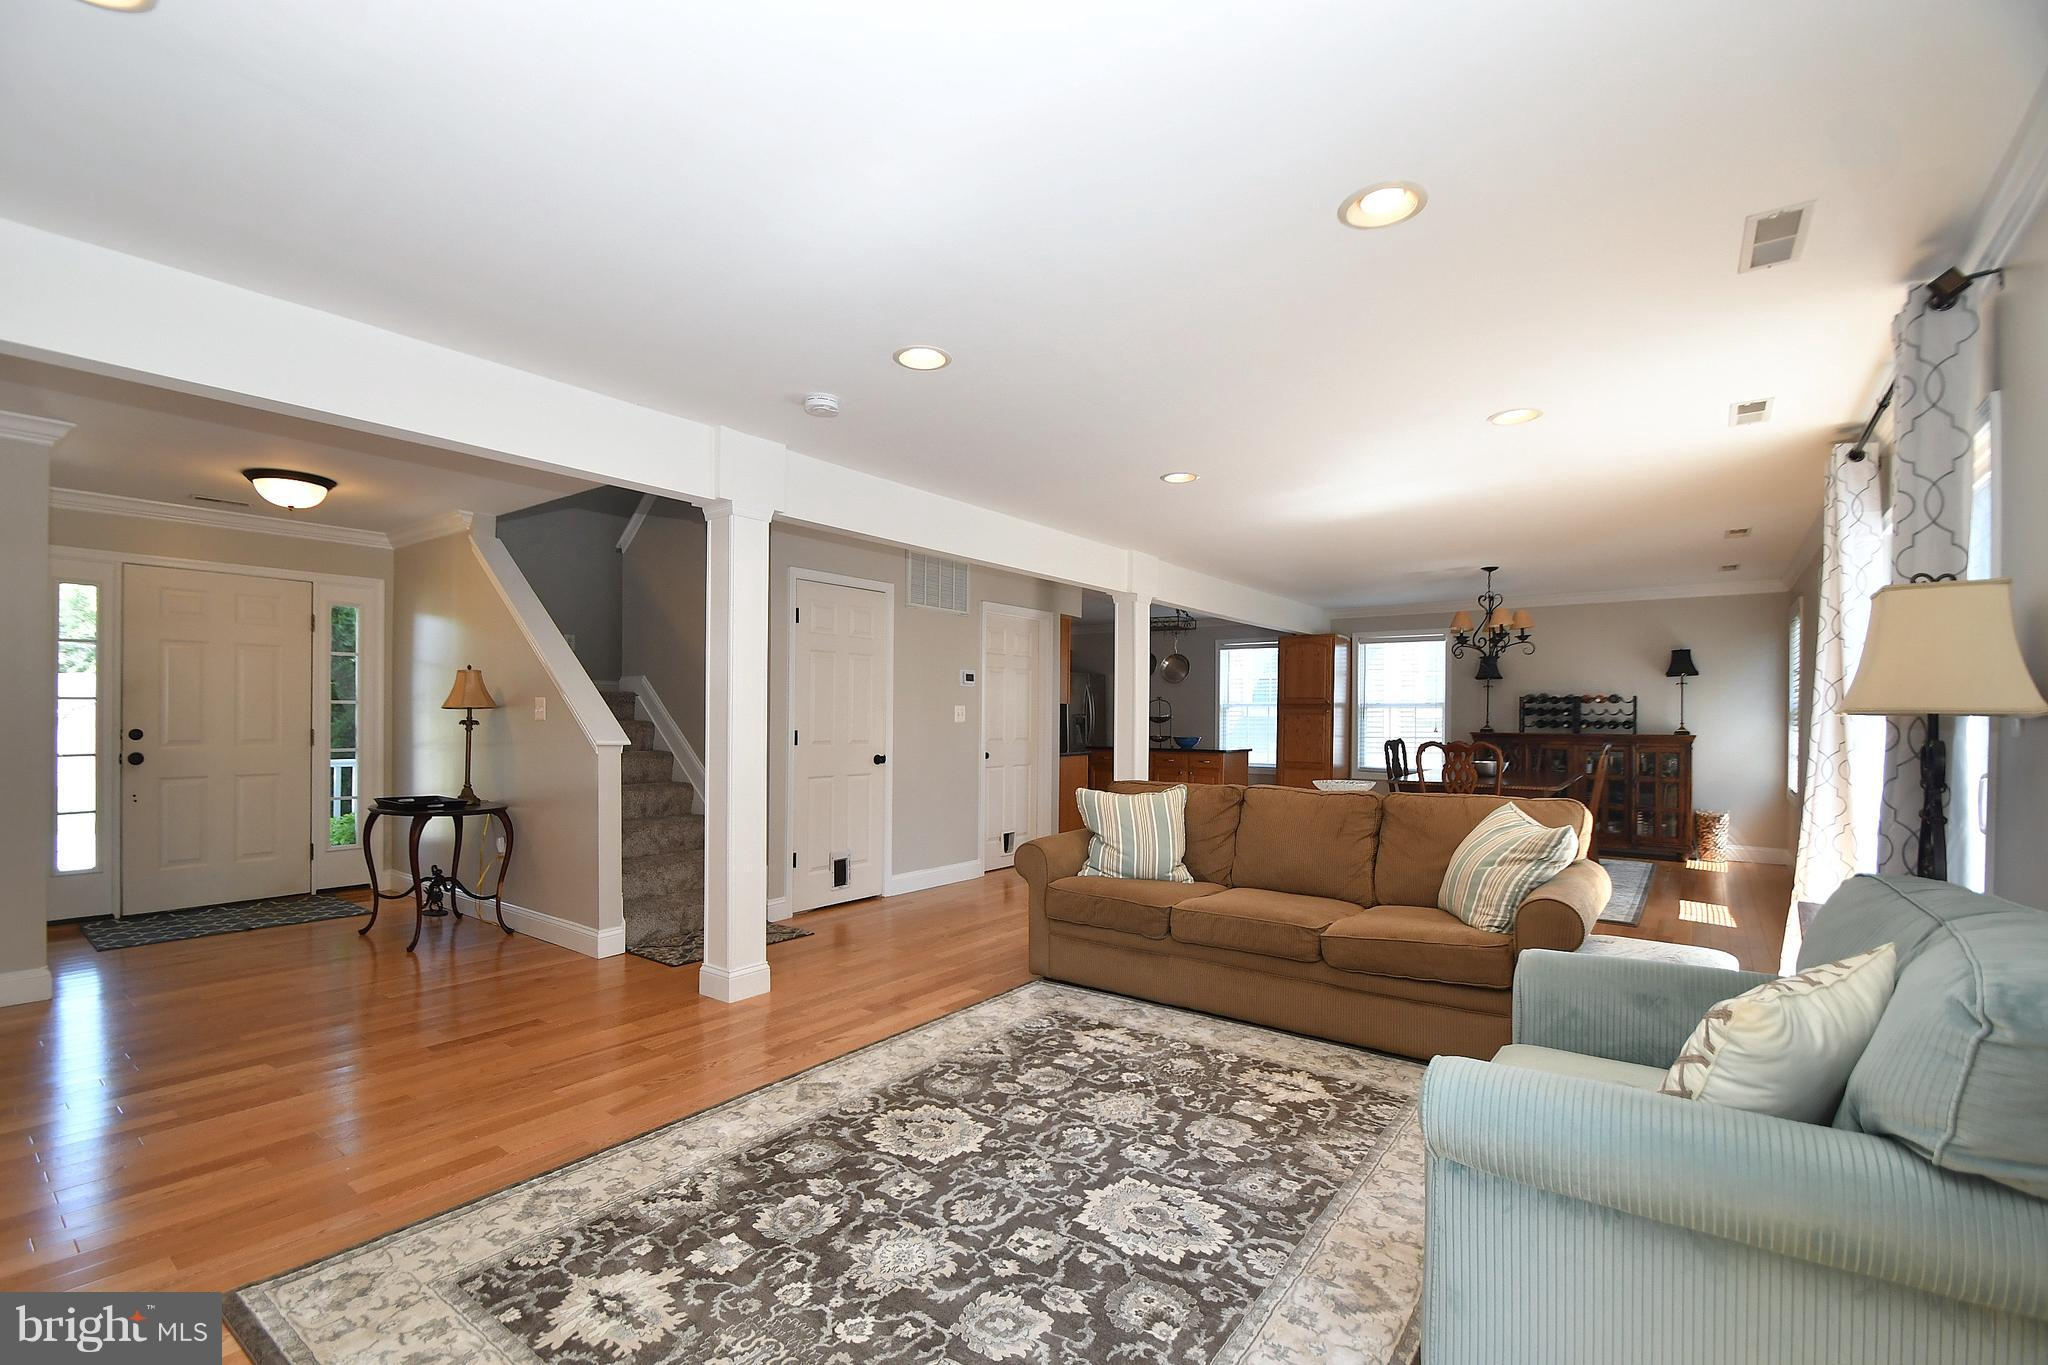 9003 MILLERS ISLAND BOULEVARD, BALTIMORE, MD 21219